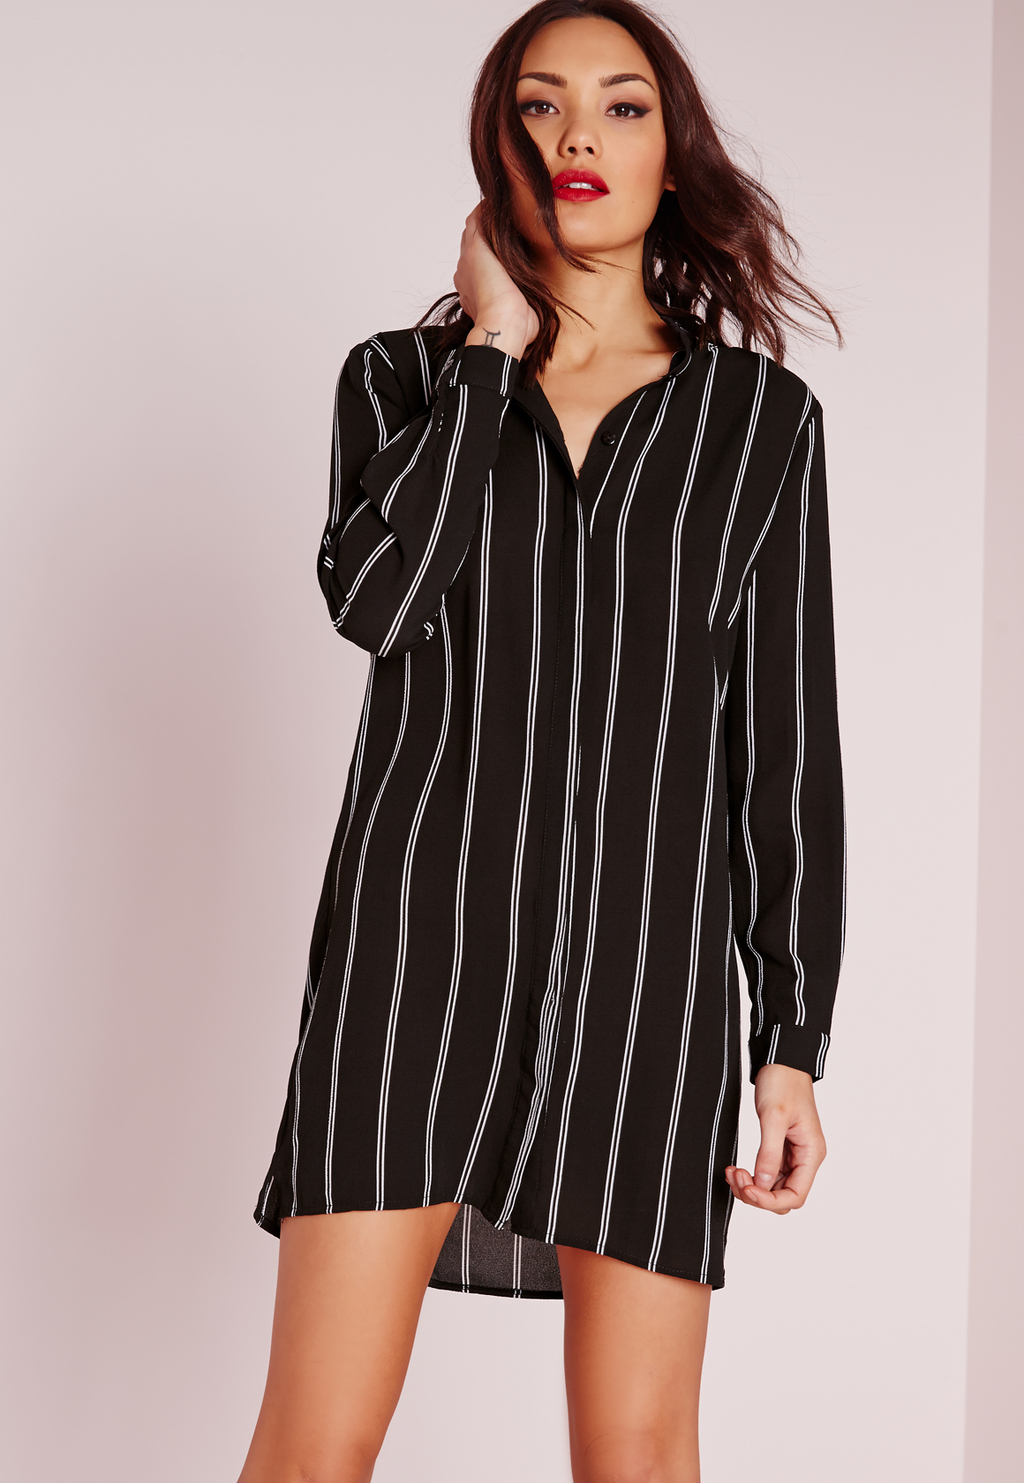 Collarless Stripe Shirt Dress Black/White, Black - style: shirt; length: mid thigh; neckline: shirt collar/peter pan/zip with opening; pattern: vertical stripes; secondary colour: light grey; predominant colour: black; occasions: casual, creative work; fit: body skimming; fibres: polyester/polyamide - 100%; sleeve length: long sleeve; sleeve style: standard; pattern type: fabric; pattern size: standard; texture group: other - light to midweight; season: s/s 2016; wardrobe: highlight